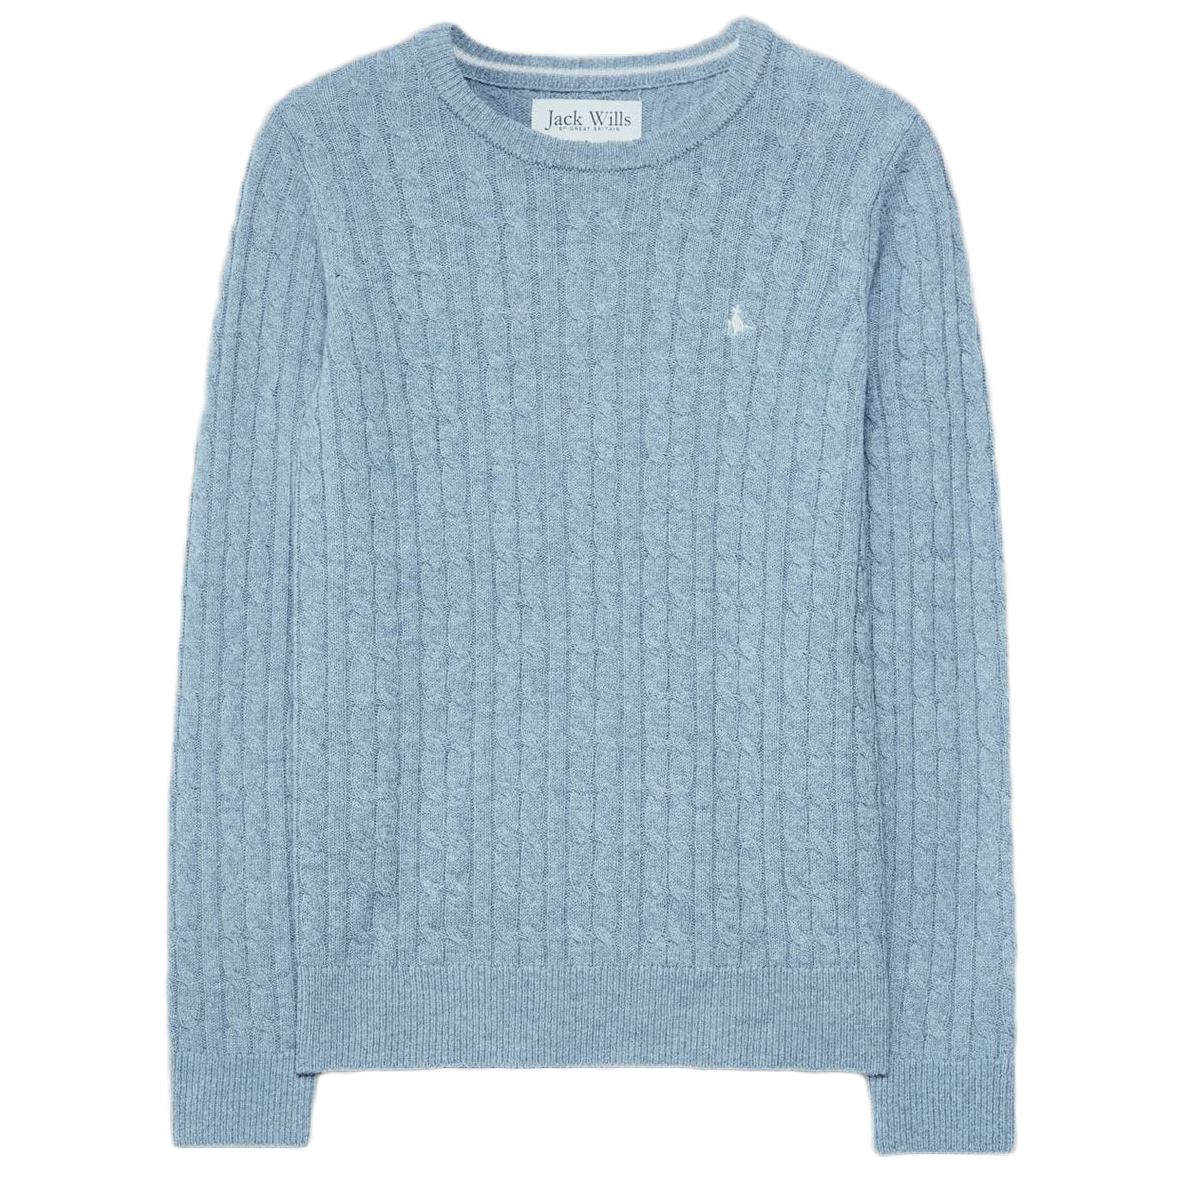 Jack Wills Tinsbury Classic Cable Crewneck Sweater - Blue, 6